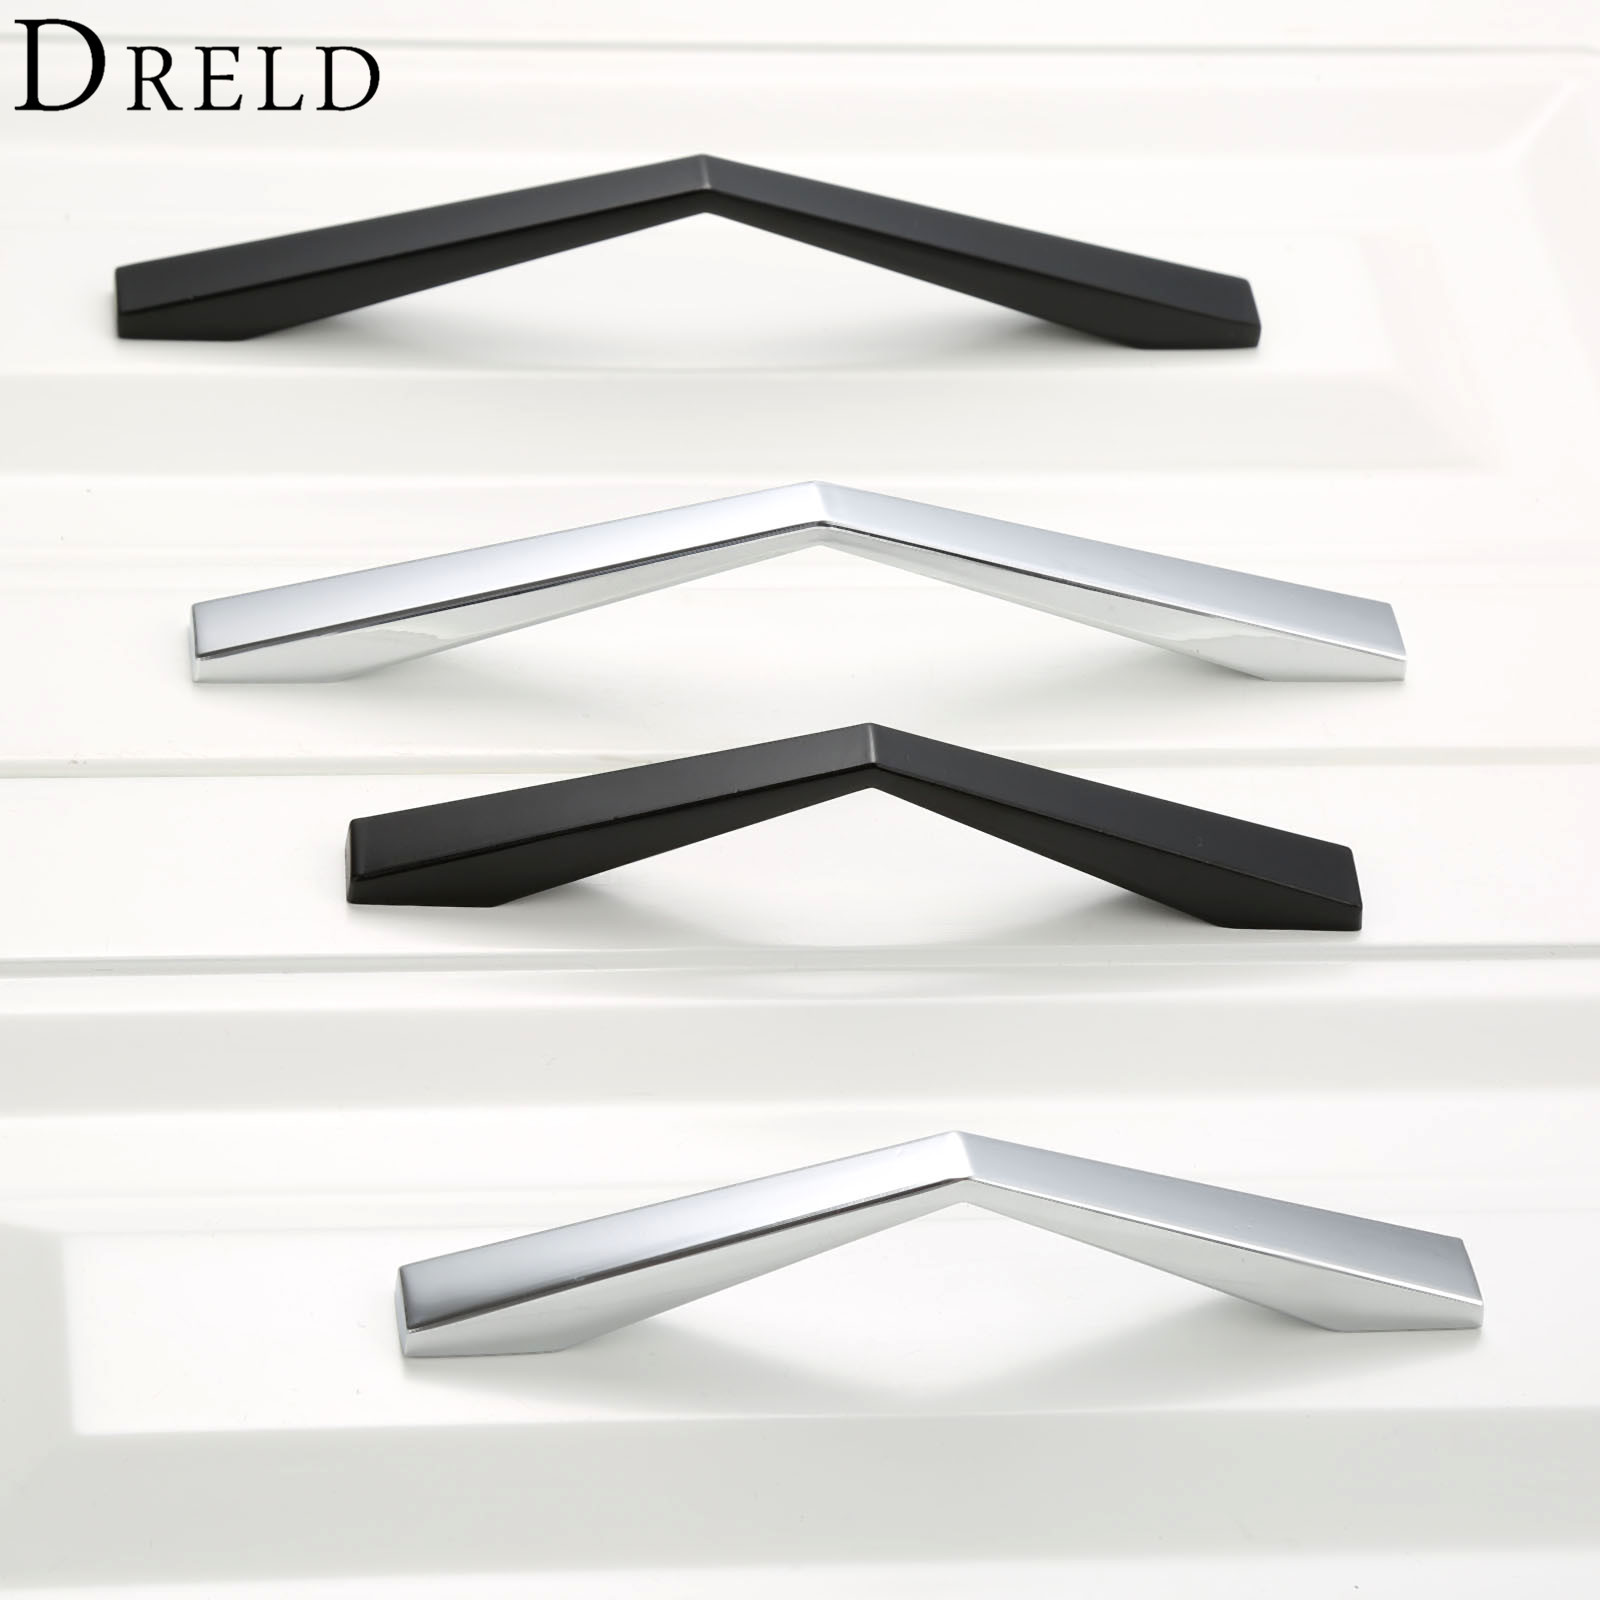 DRELD Furniture Handle Cabinet Knobs and Handles Closet Drawer Door Kitchen Pull Handle Hole Spacing 96/128mm Furniture Hardware hot brown handle single hole leather door handles cabinet cupboard drawer pull knobs furniture kitchen accessories 96 160 192mm